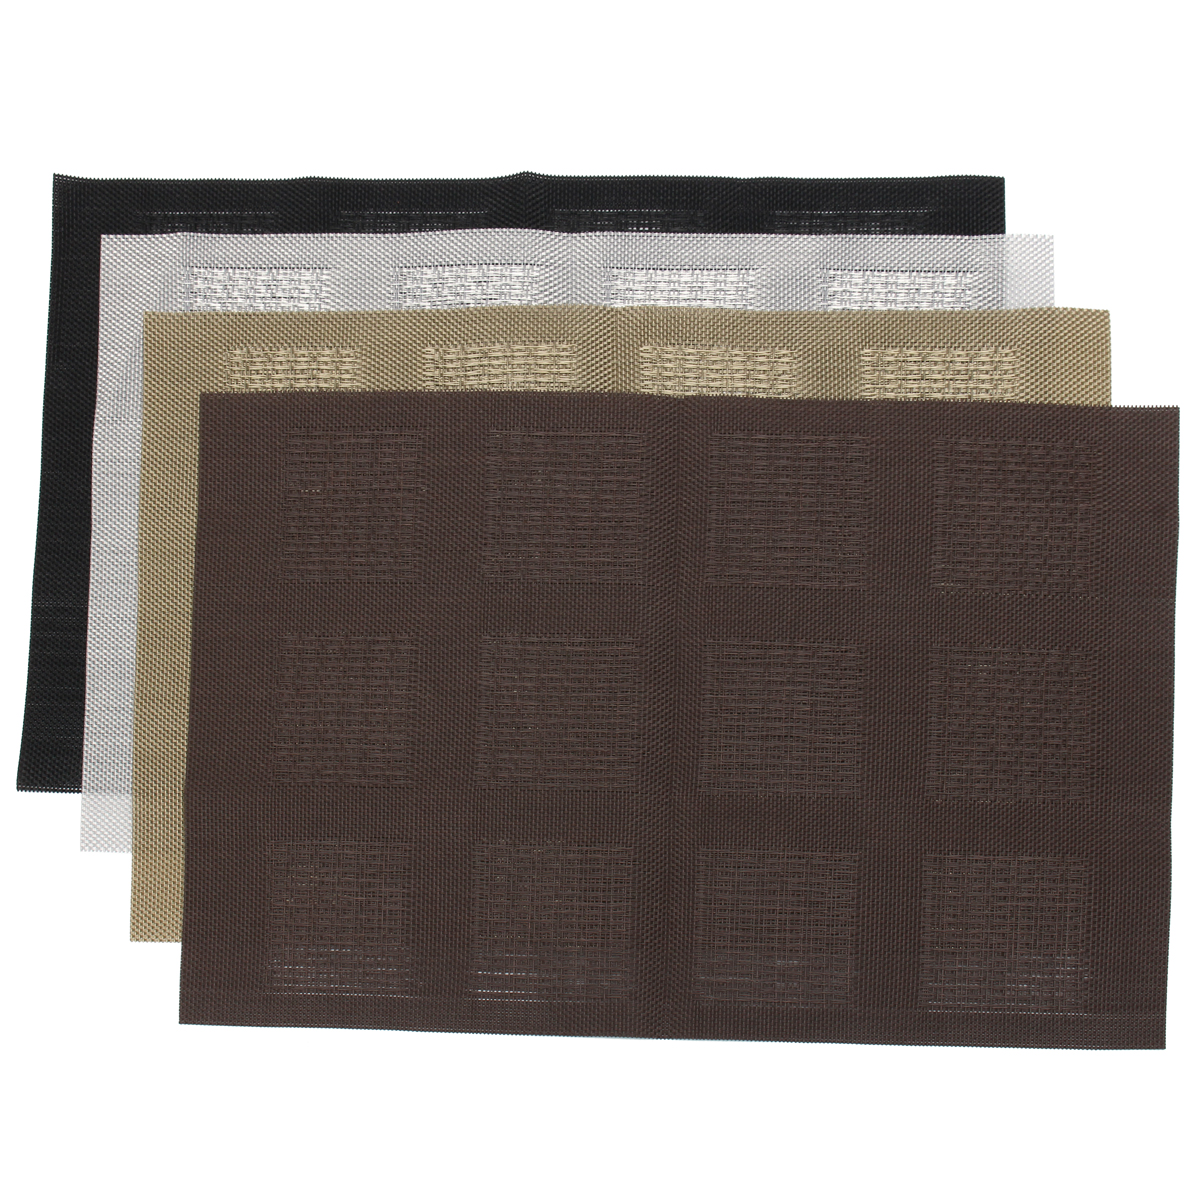 Heat Resistant Dining Table Mat Pad Placemat PVC Insulation Kitchen Tableware